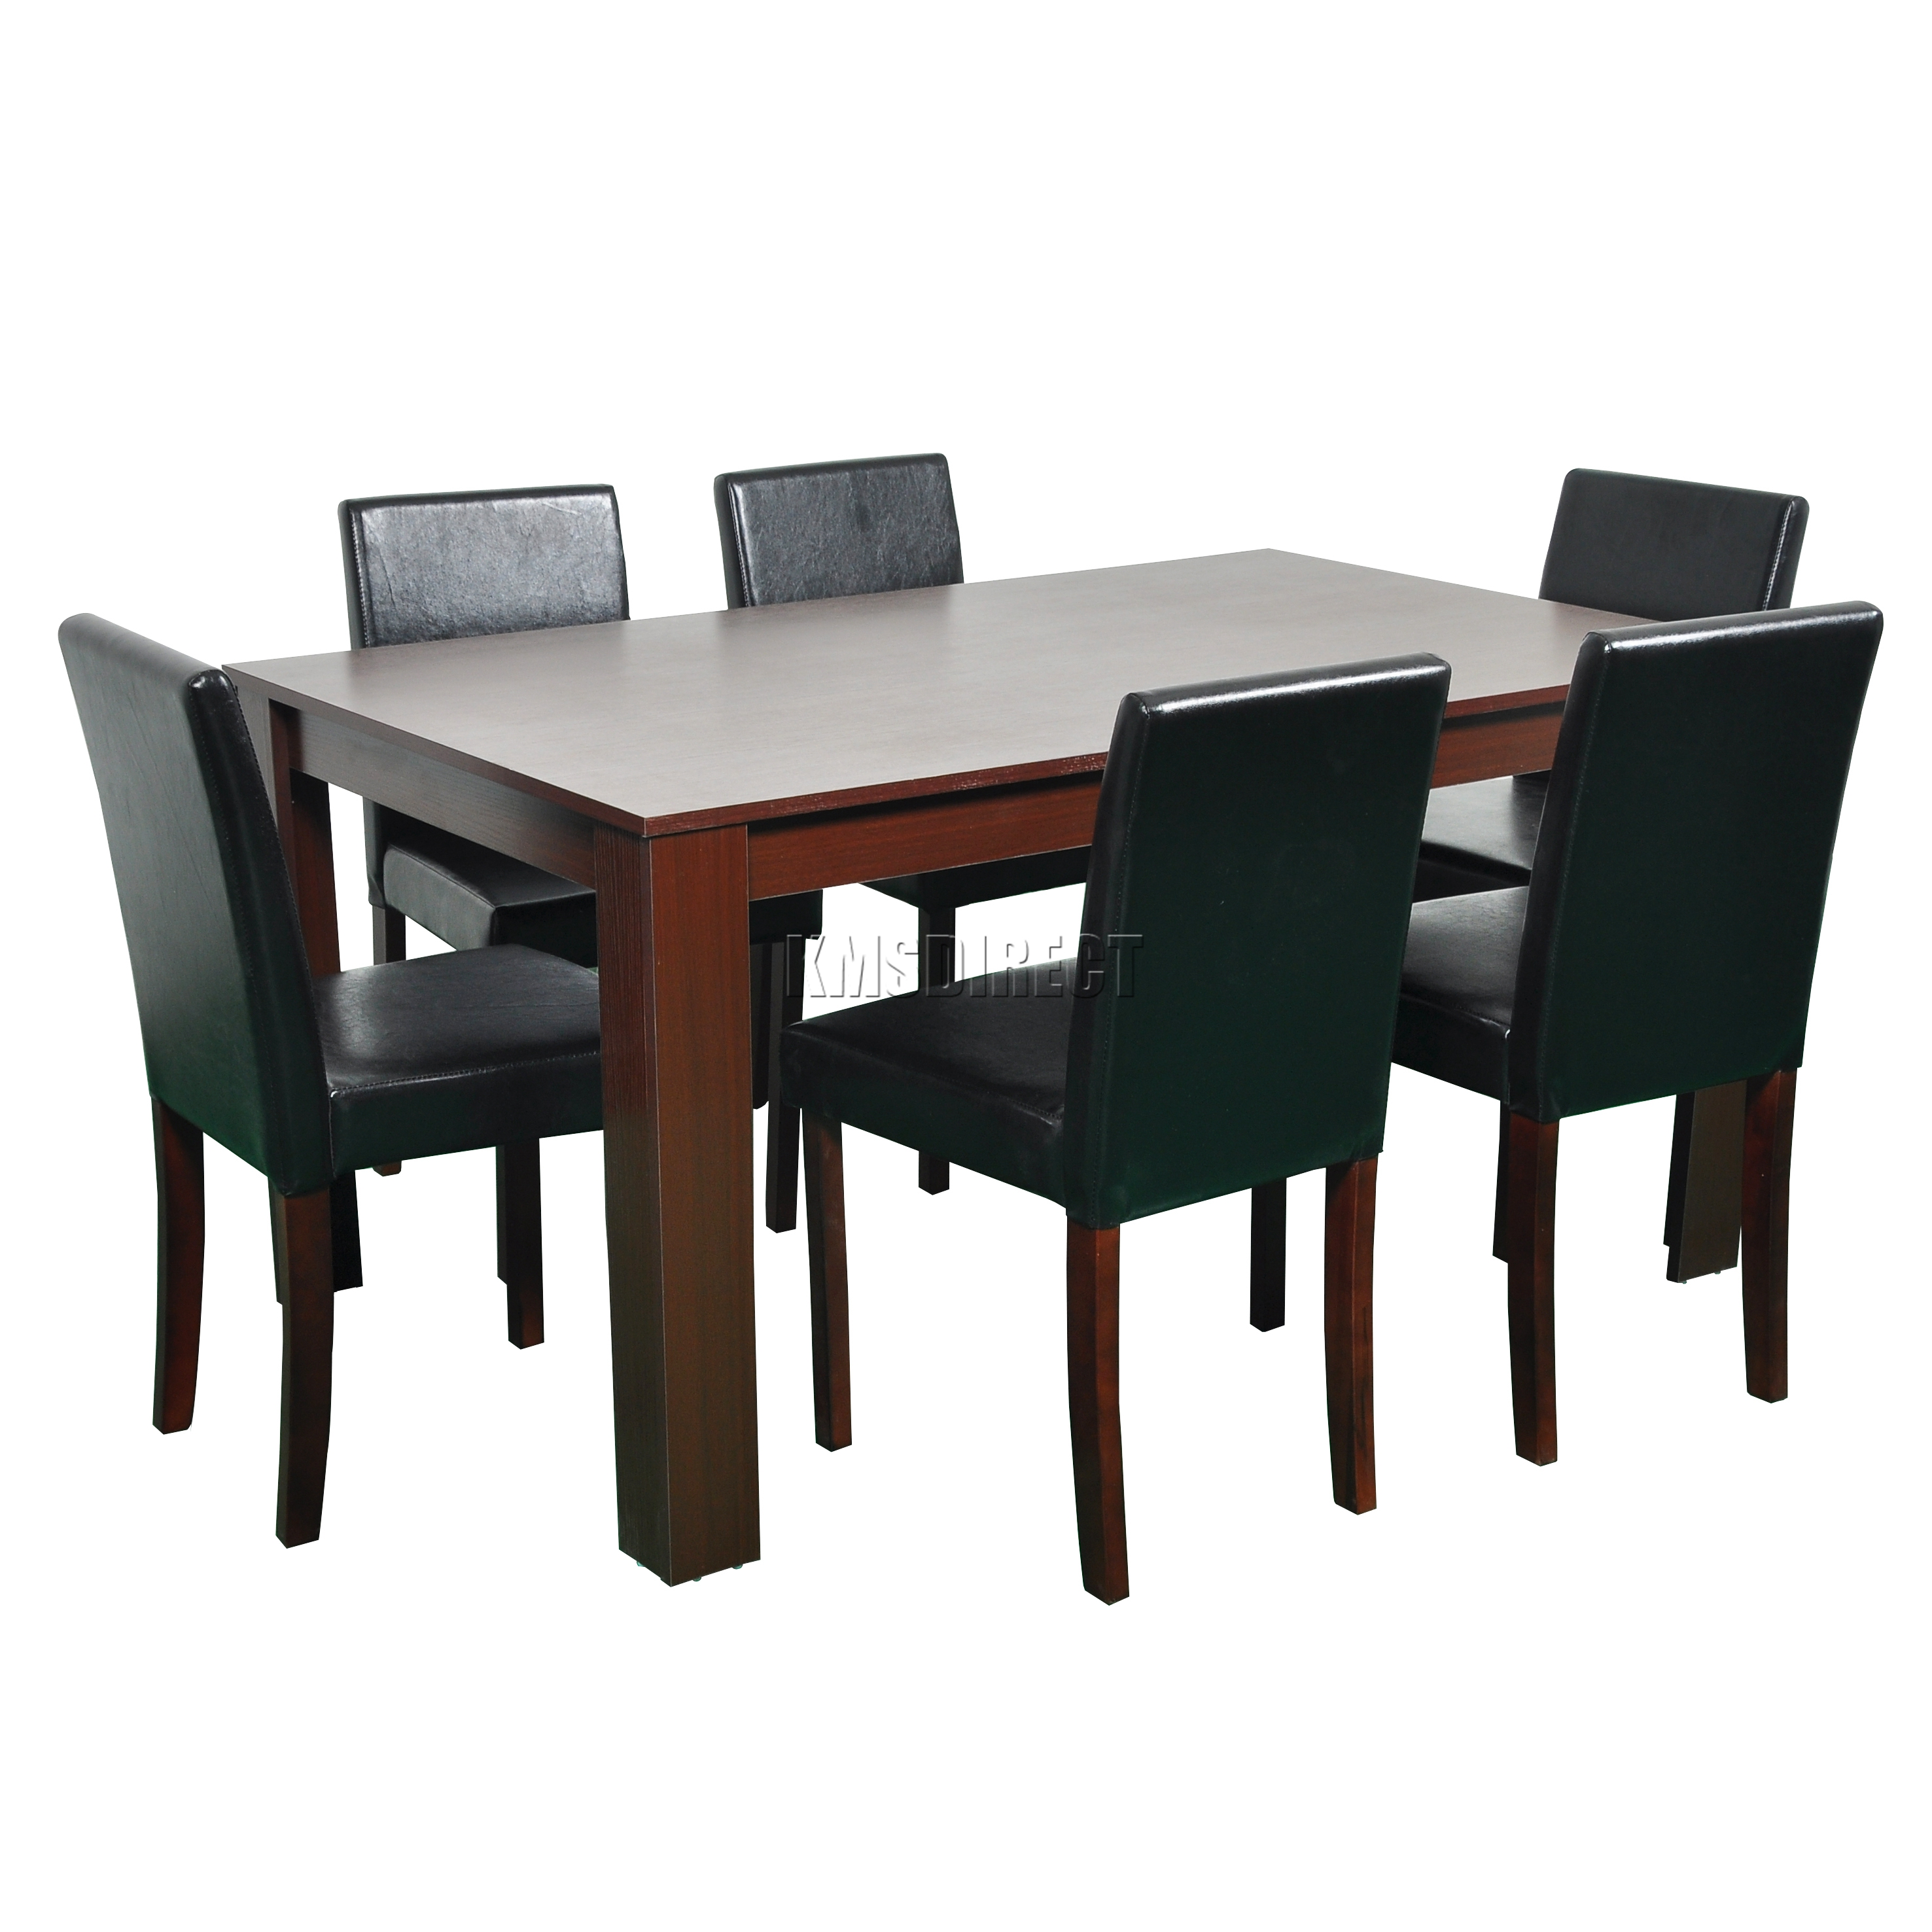 Foxhunter wooden dining table and 6 pu faux leather chairs for Table and chairs furniture